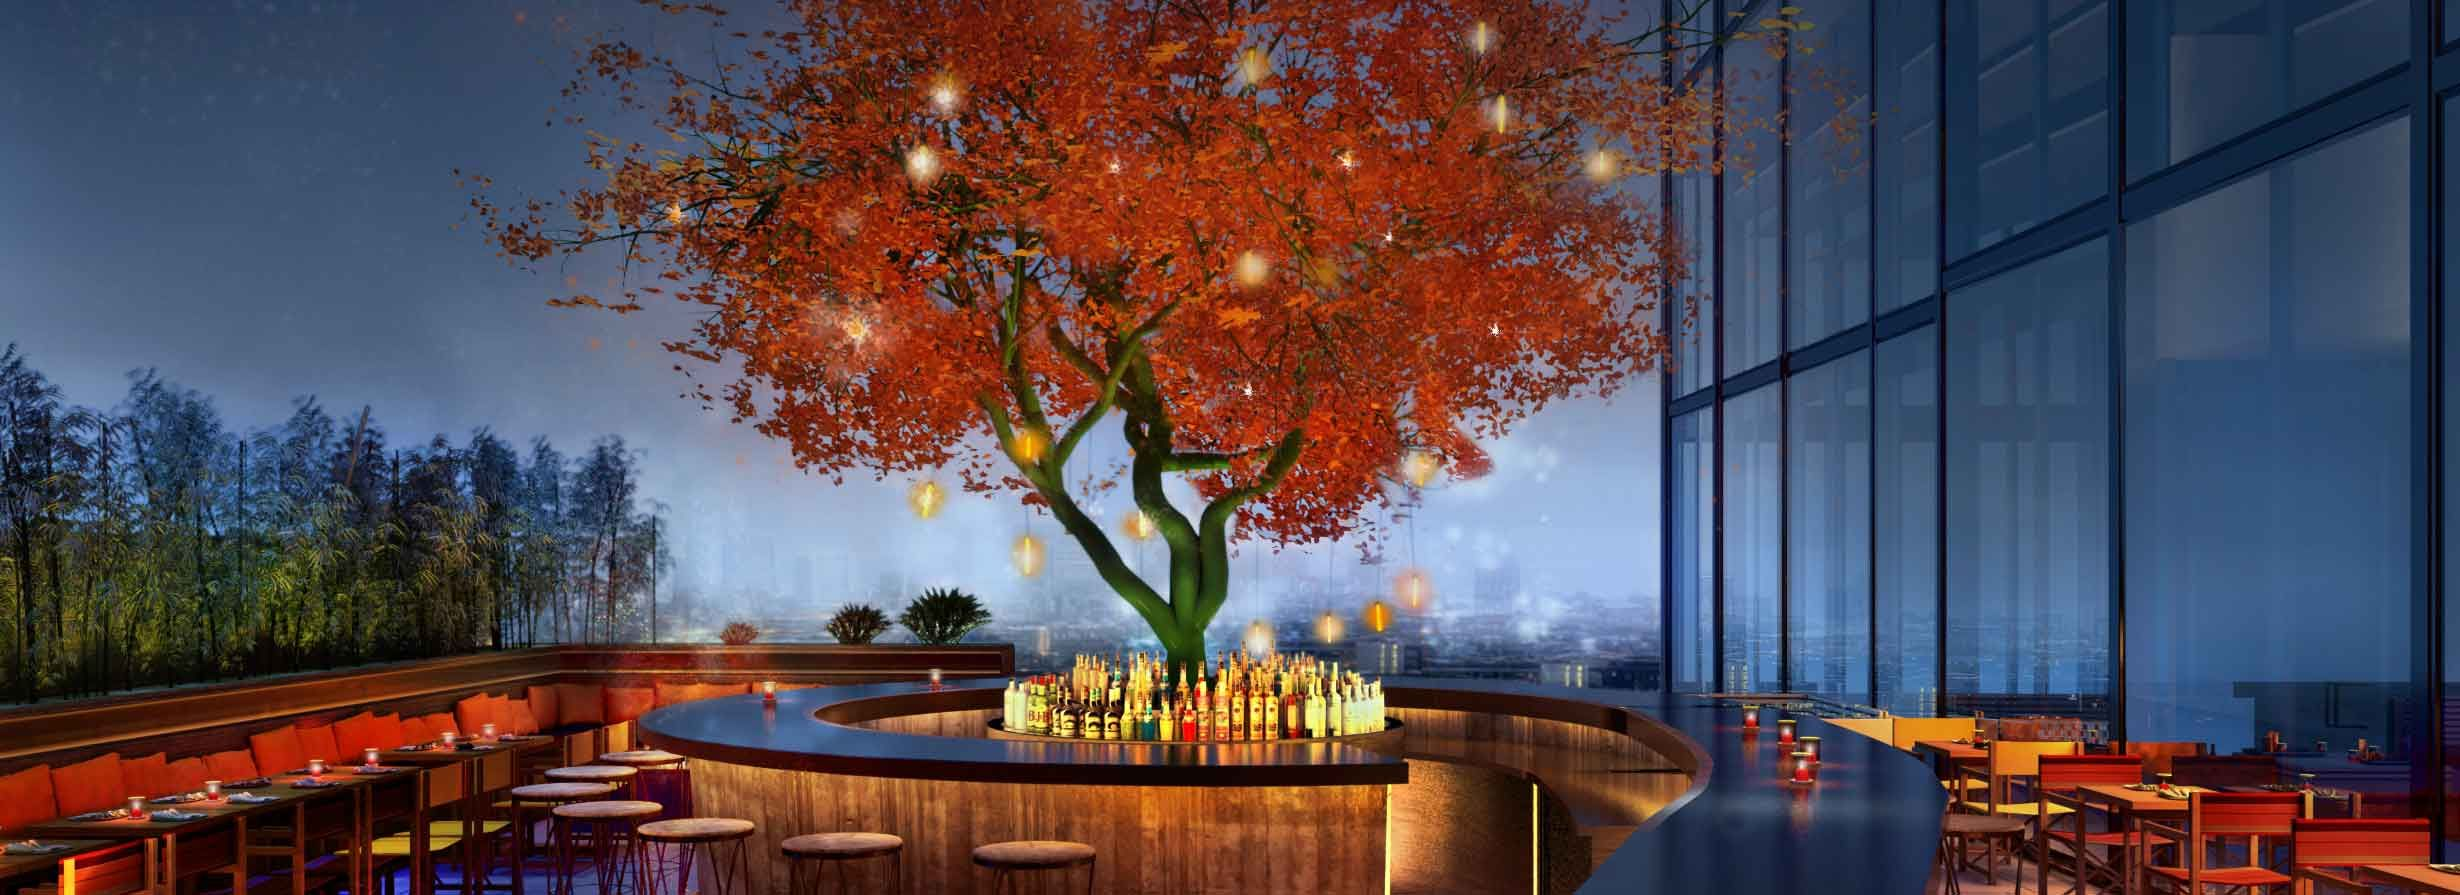 Open air Terrace Bar 37 stories up at Sushisamba in the ...